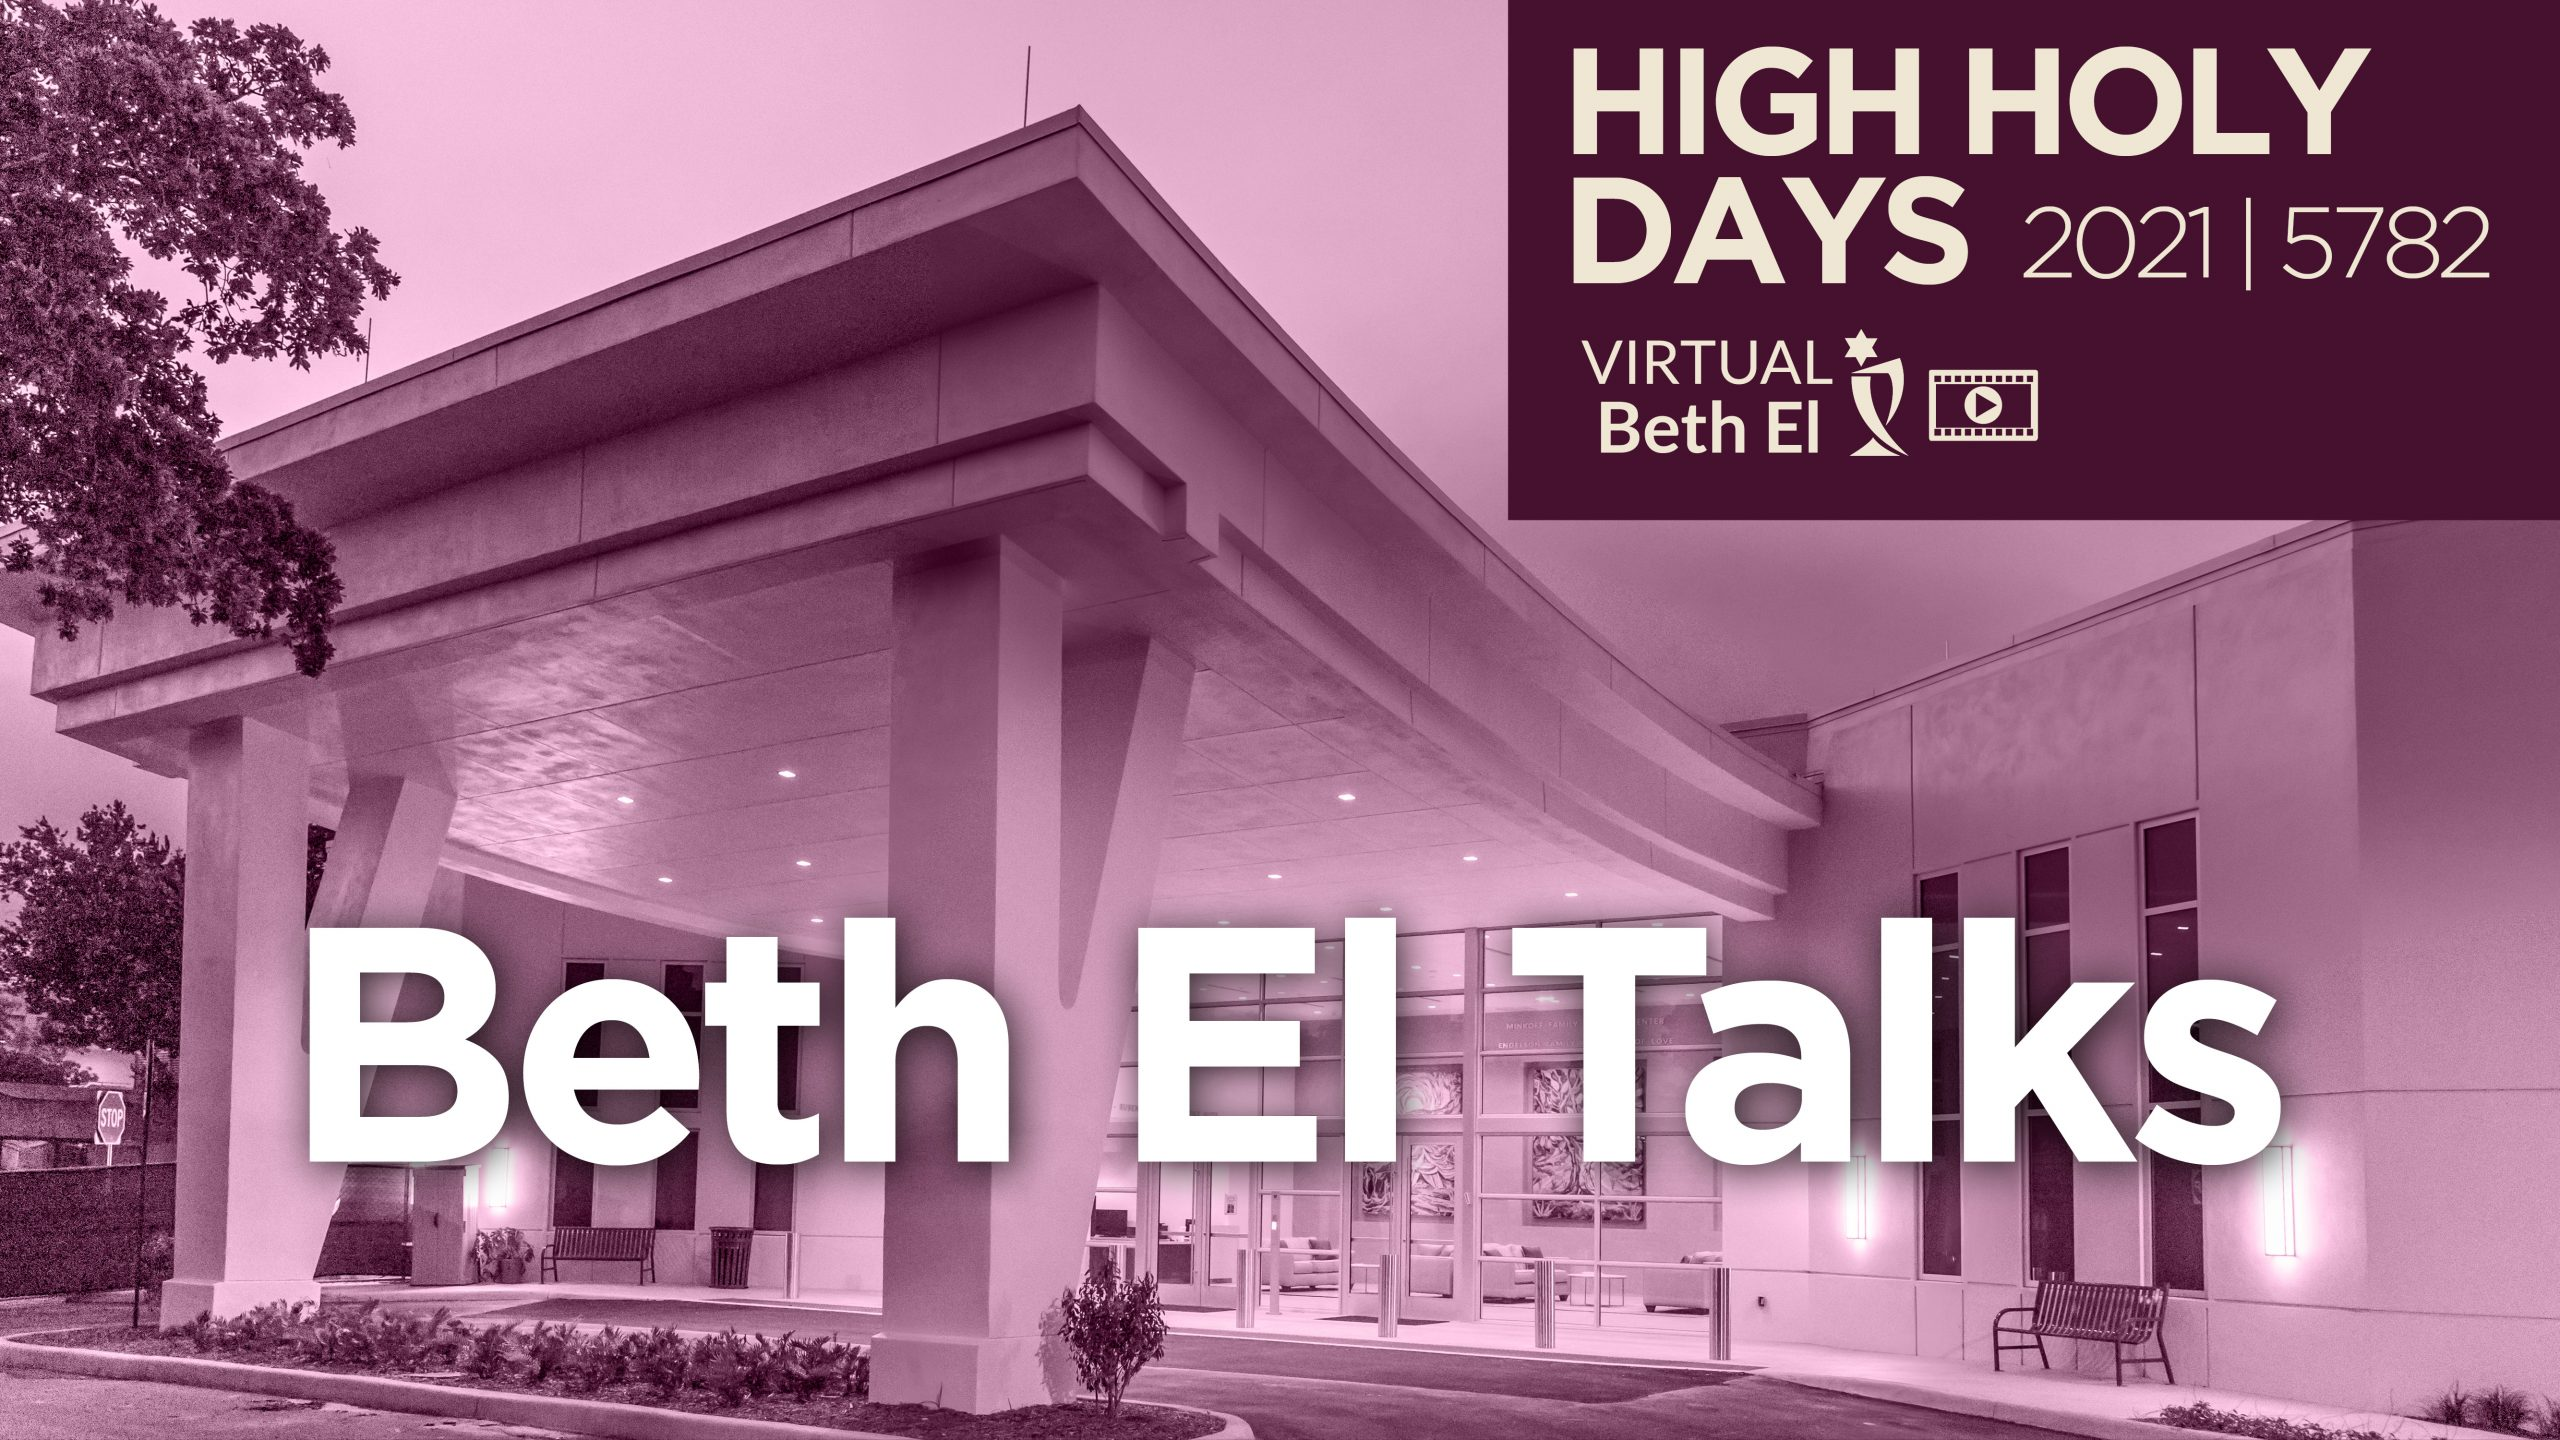 Beth El Talks, event graphic for Temple Beth El High Holy Days event on Yom Kippur with Temple Beth El, virtual event only